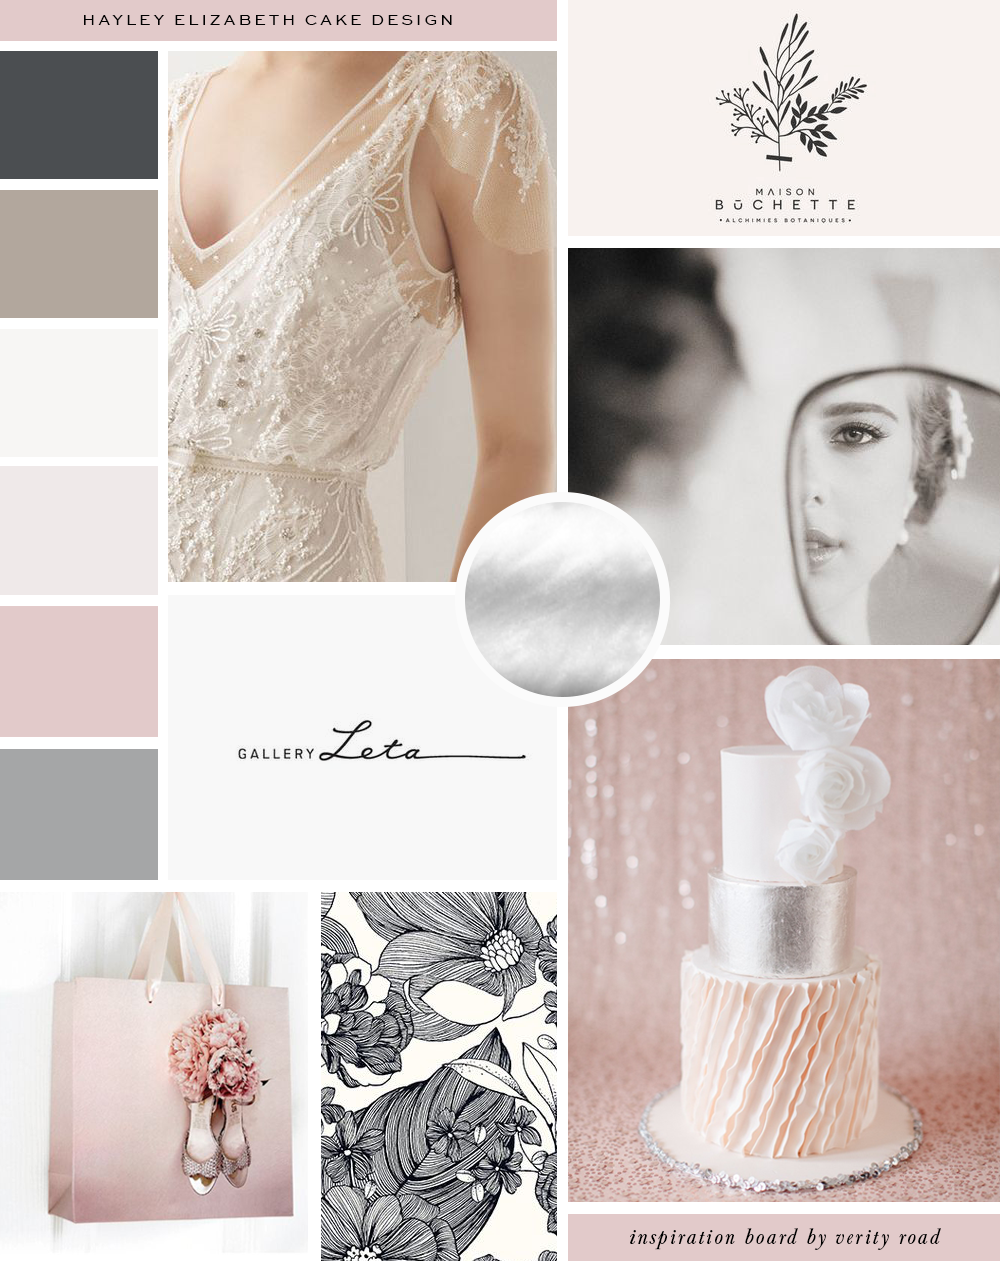 Mood board, inspiration board for the branding, brand design, brand styling of Hayley Elizabeth Cake Design by Verity Road.Feminine branding, feminine web design, luxury branding, female entrepreneur, wedding professional, wedding business branding. Dusky pink, grey, silver, taupe and charcoal. Elegant, romantic style.